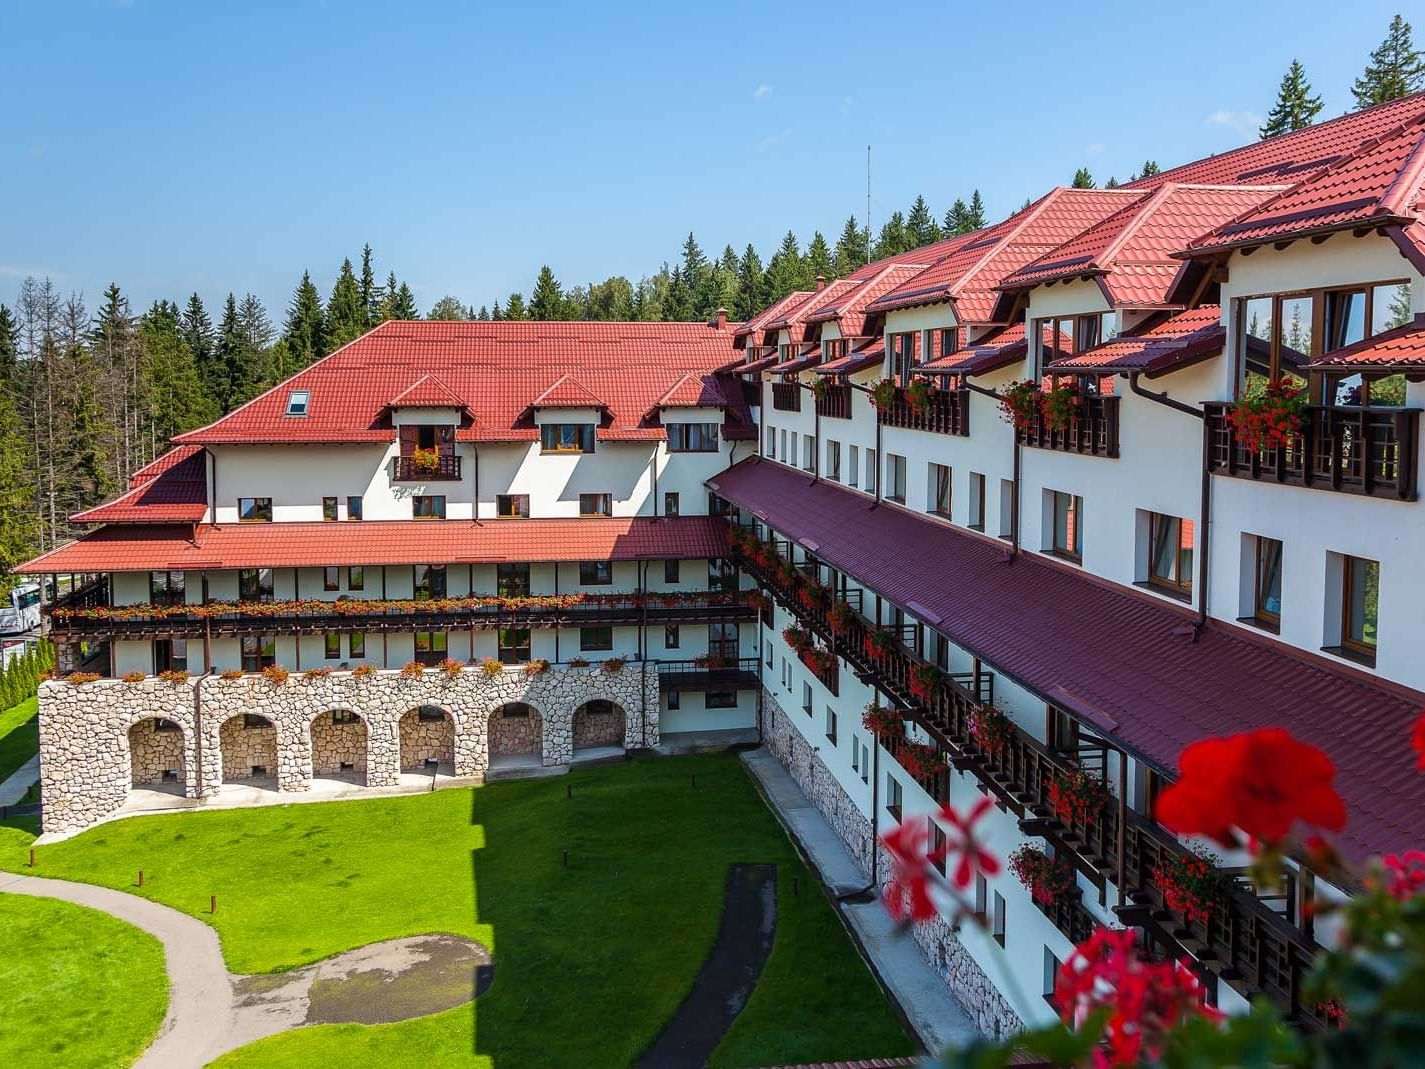 Exterior view of the Hotel at Ana Hotels Sport Poiana Brașov